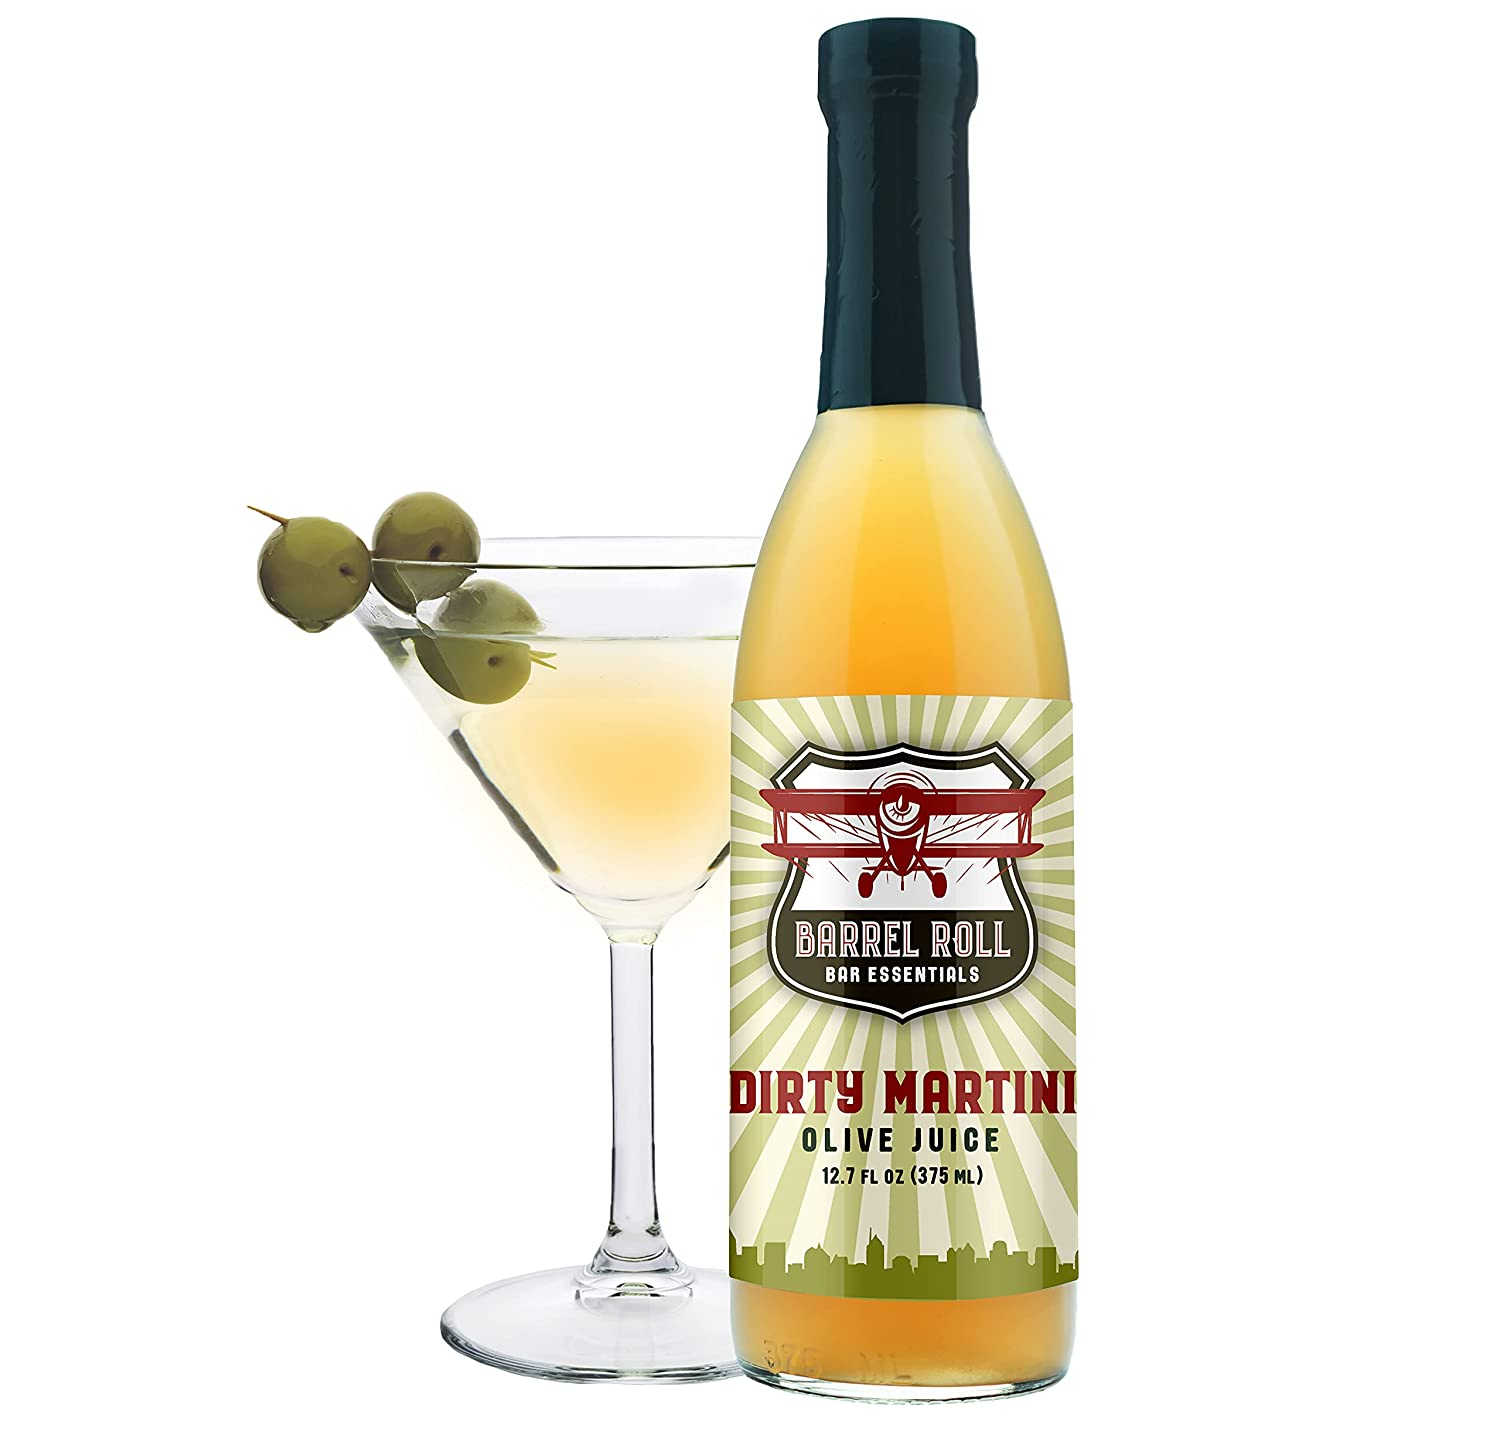 Barrel Roll Bar Essentials Cocktail Mixers - Dirty Martini Mix - Olive Brine - Handcrafted in the USA - Small Batch Drink Mix - Olive Juice - 12.7 Ounce Martini Juice Bottle – Vodka Gin Vermouth Mixer